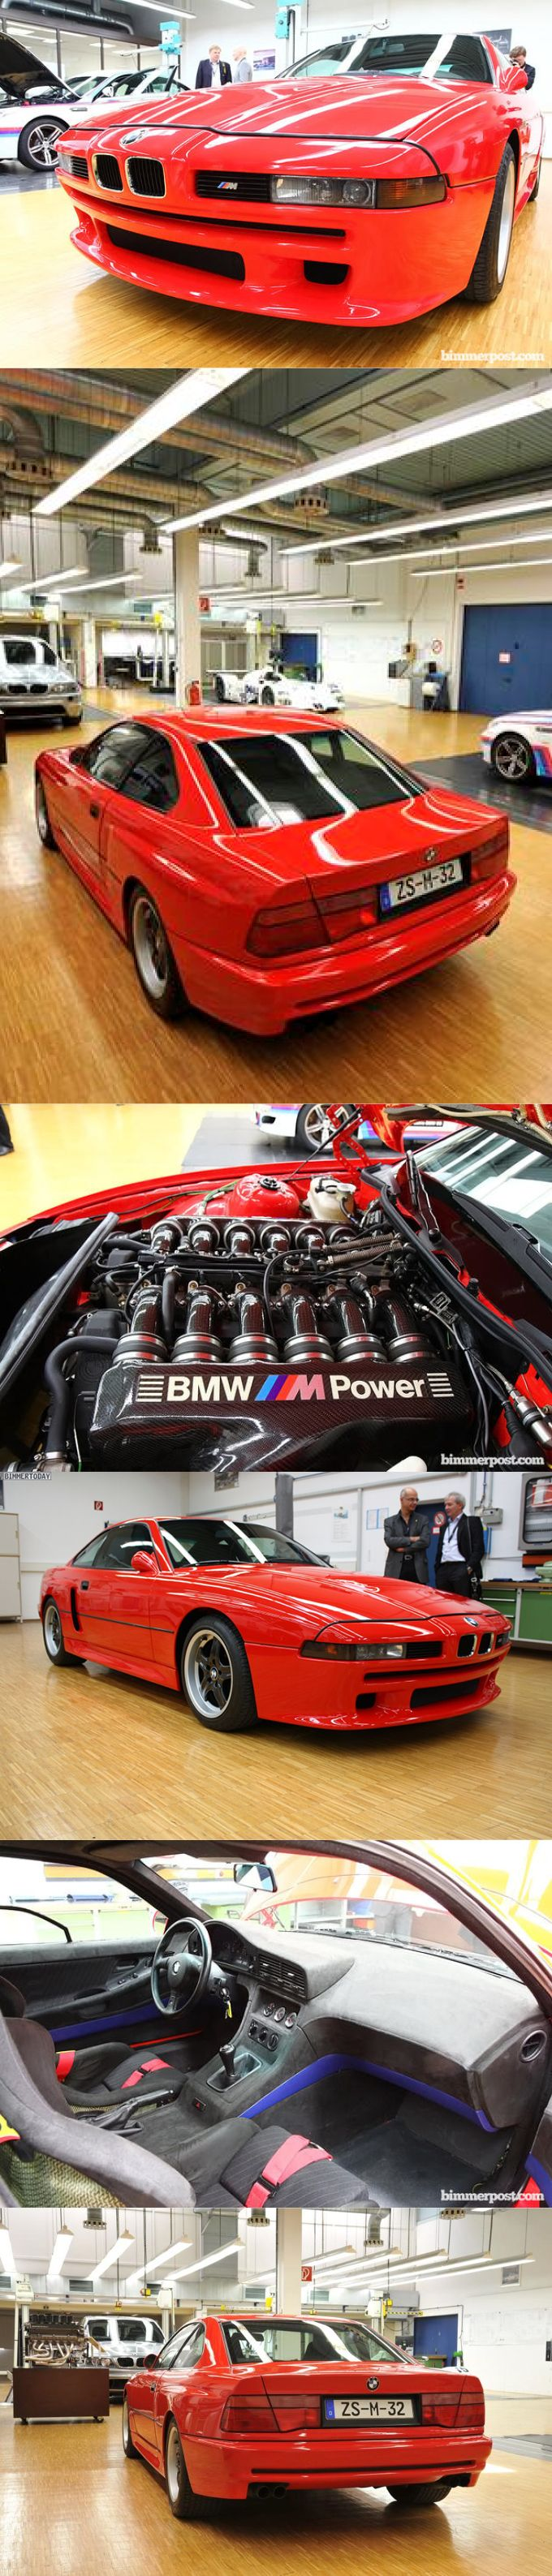 1990 BMW M8 / 550hp V12 / 1 prototype / red / Germany / 17-315